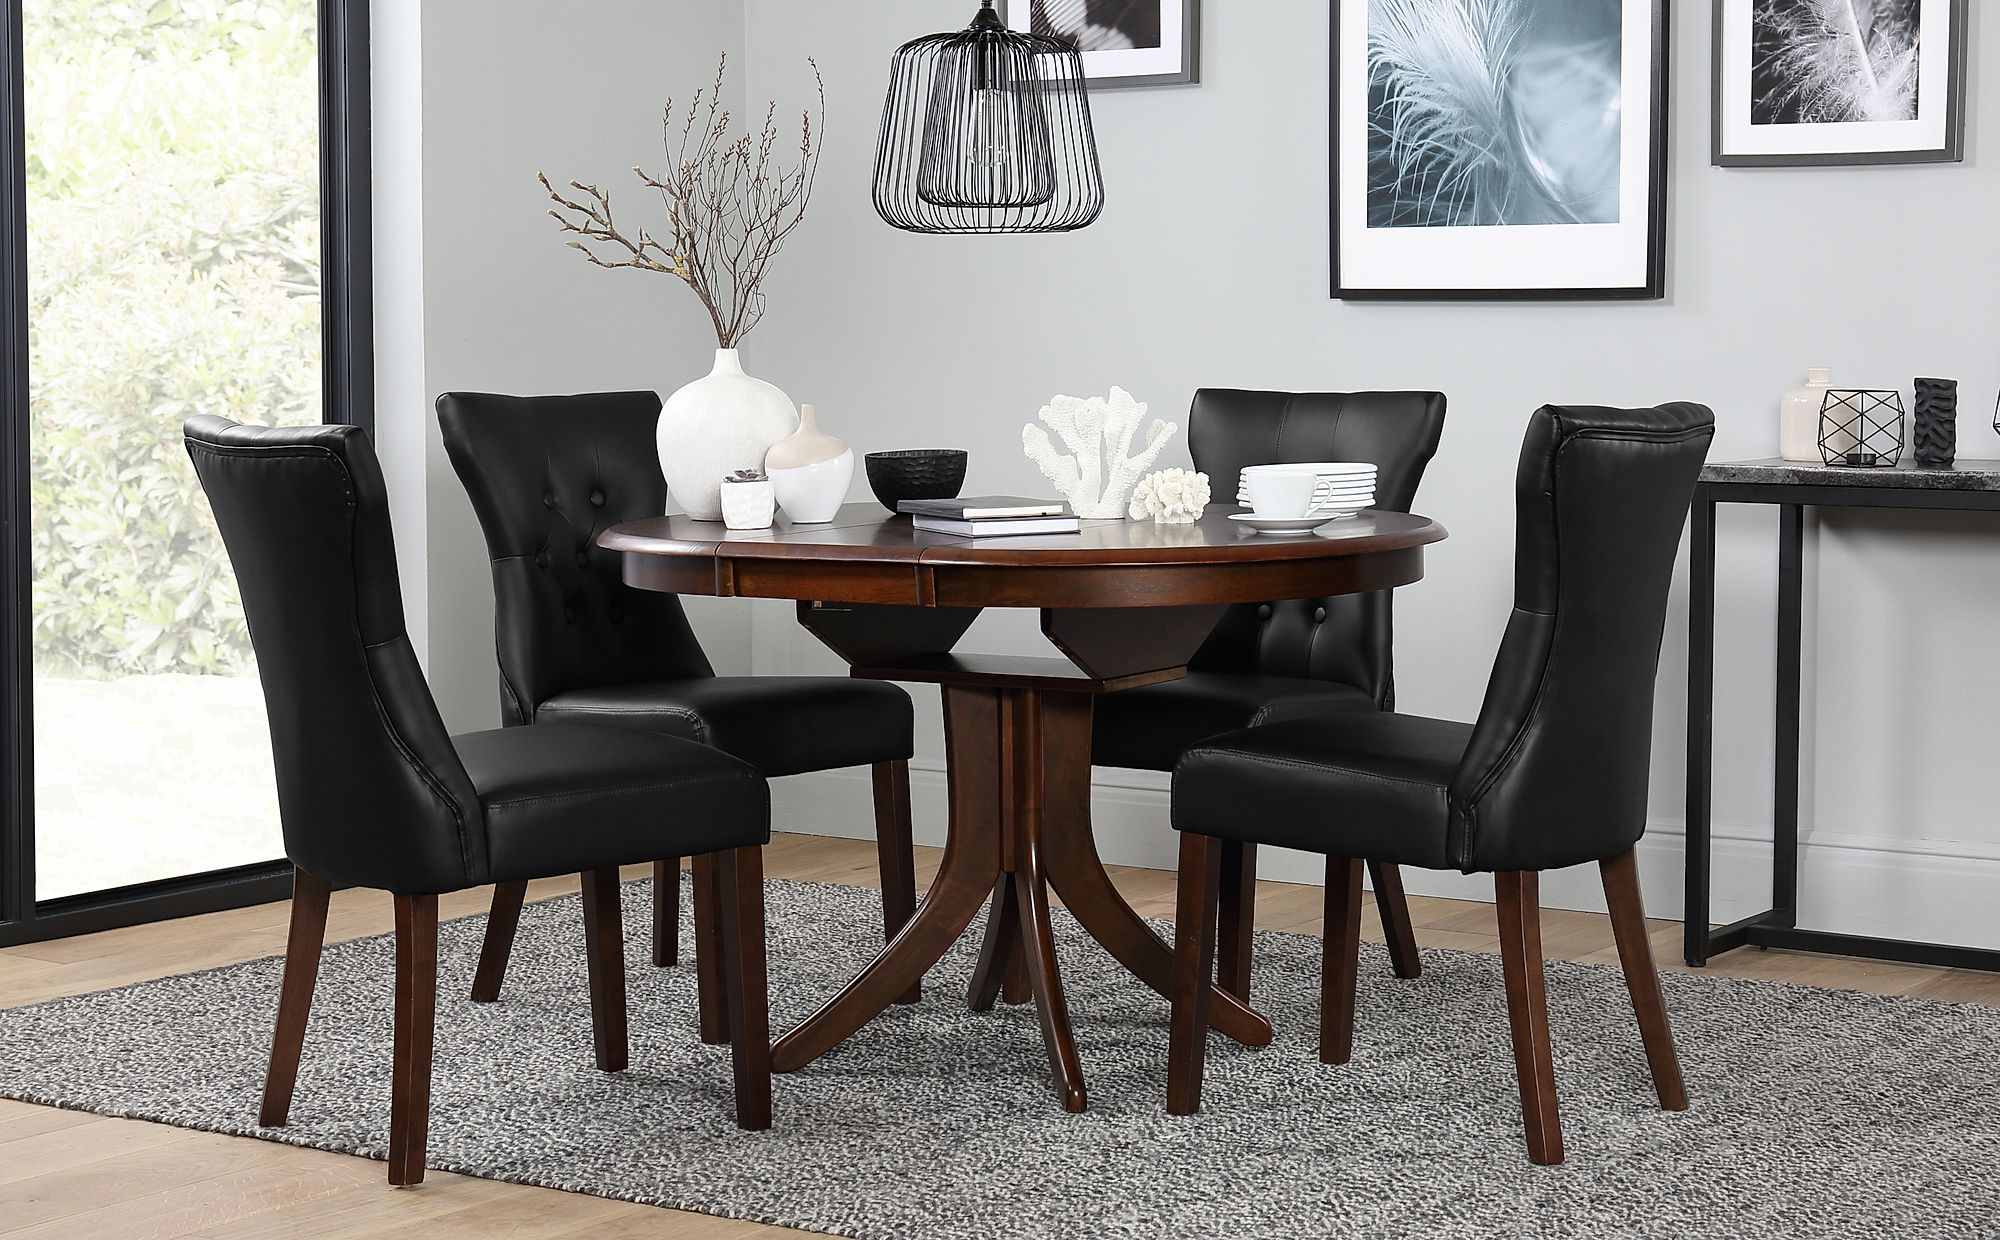 Magnificent Hudson Round Dark Wood Extending Dining Table With 6 Bewley Brown Chairs Onthecornerstone Fun Painted Chair Ideas Images Onthecornerstoneorg